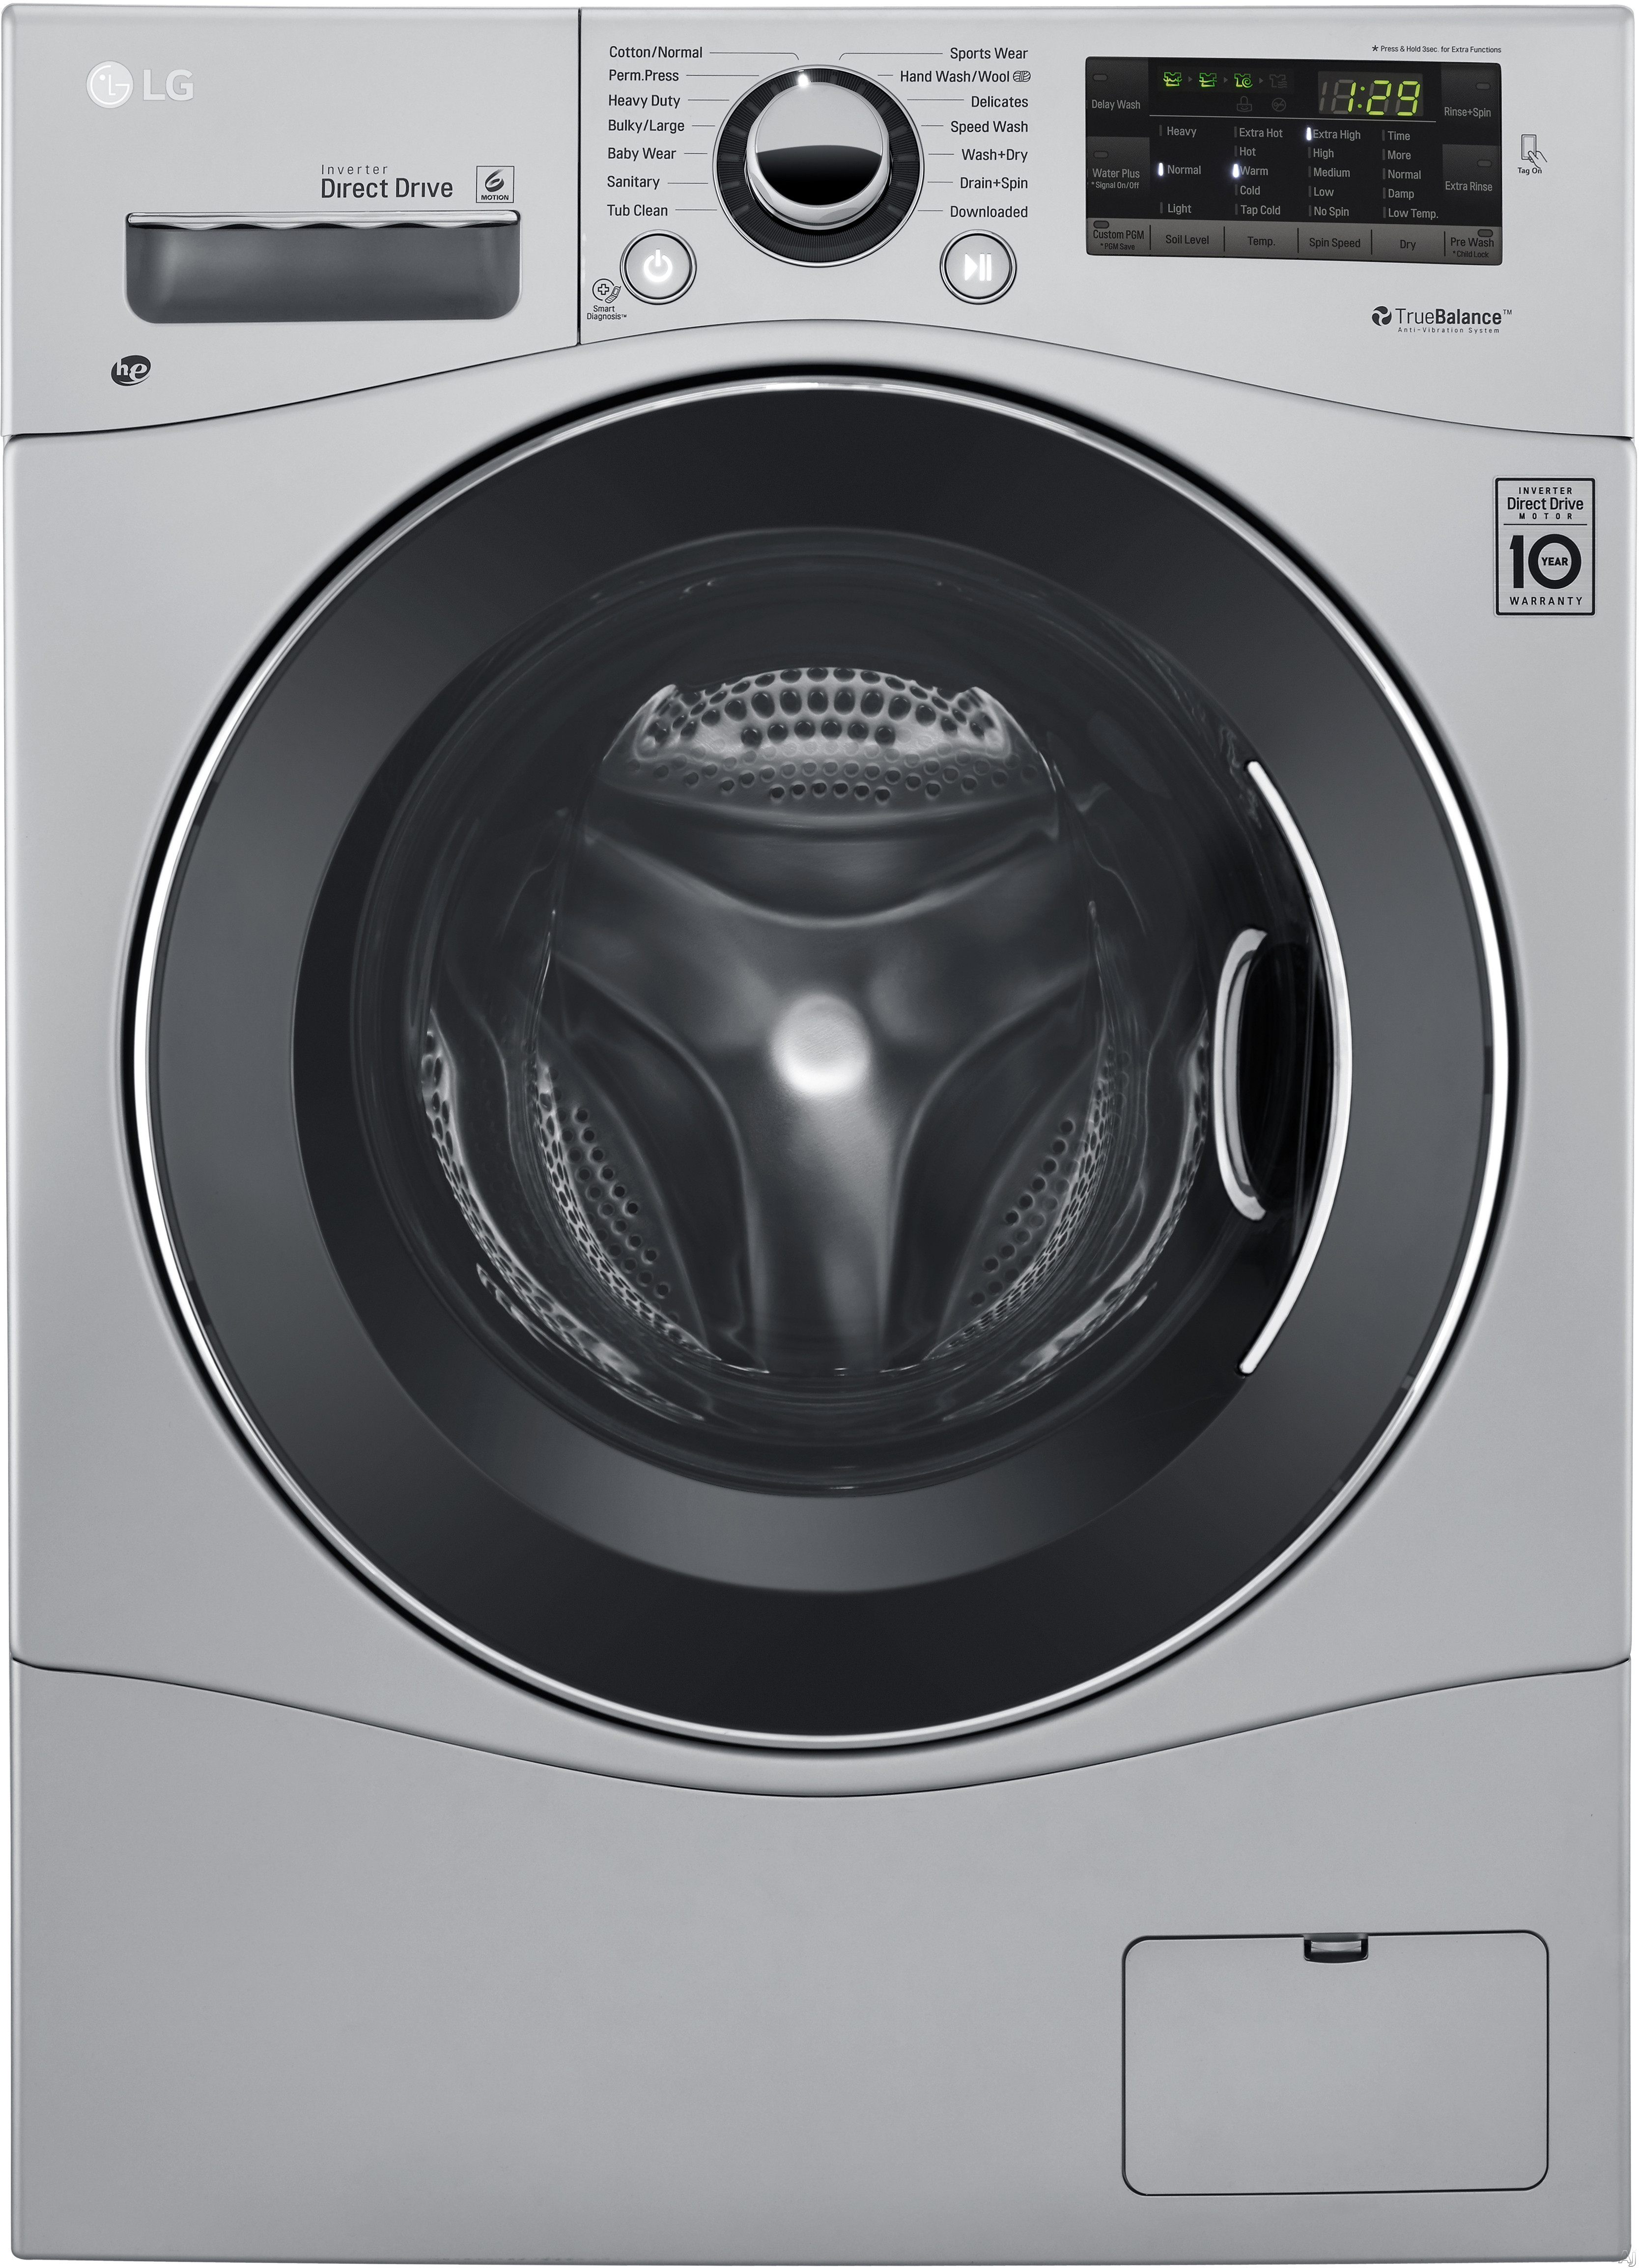 LG WM3488H 24 Inch Ventless Electric Washer/Dryer Combo with 2.3 cu. ft Capacity, 14 Wash Cycles, 10 Wash Options, Steam, Sanitary Cycle, 1,400 RPM, NFC Tag On Technology, 4 Tray Dispenser, LoadSense and LoDecibel Quiet Operation